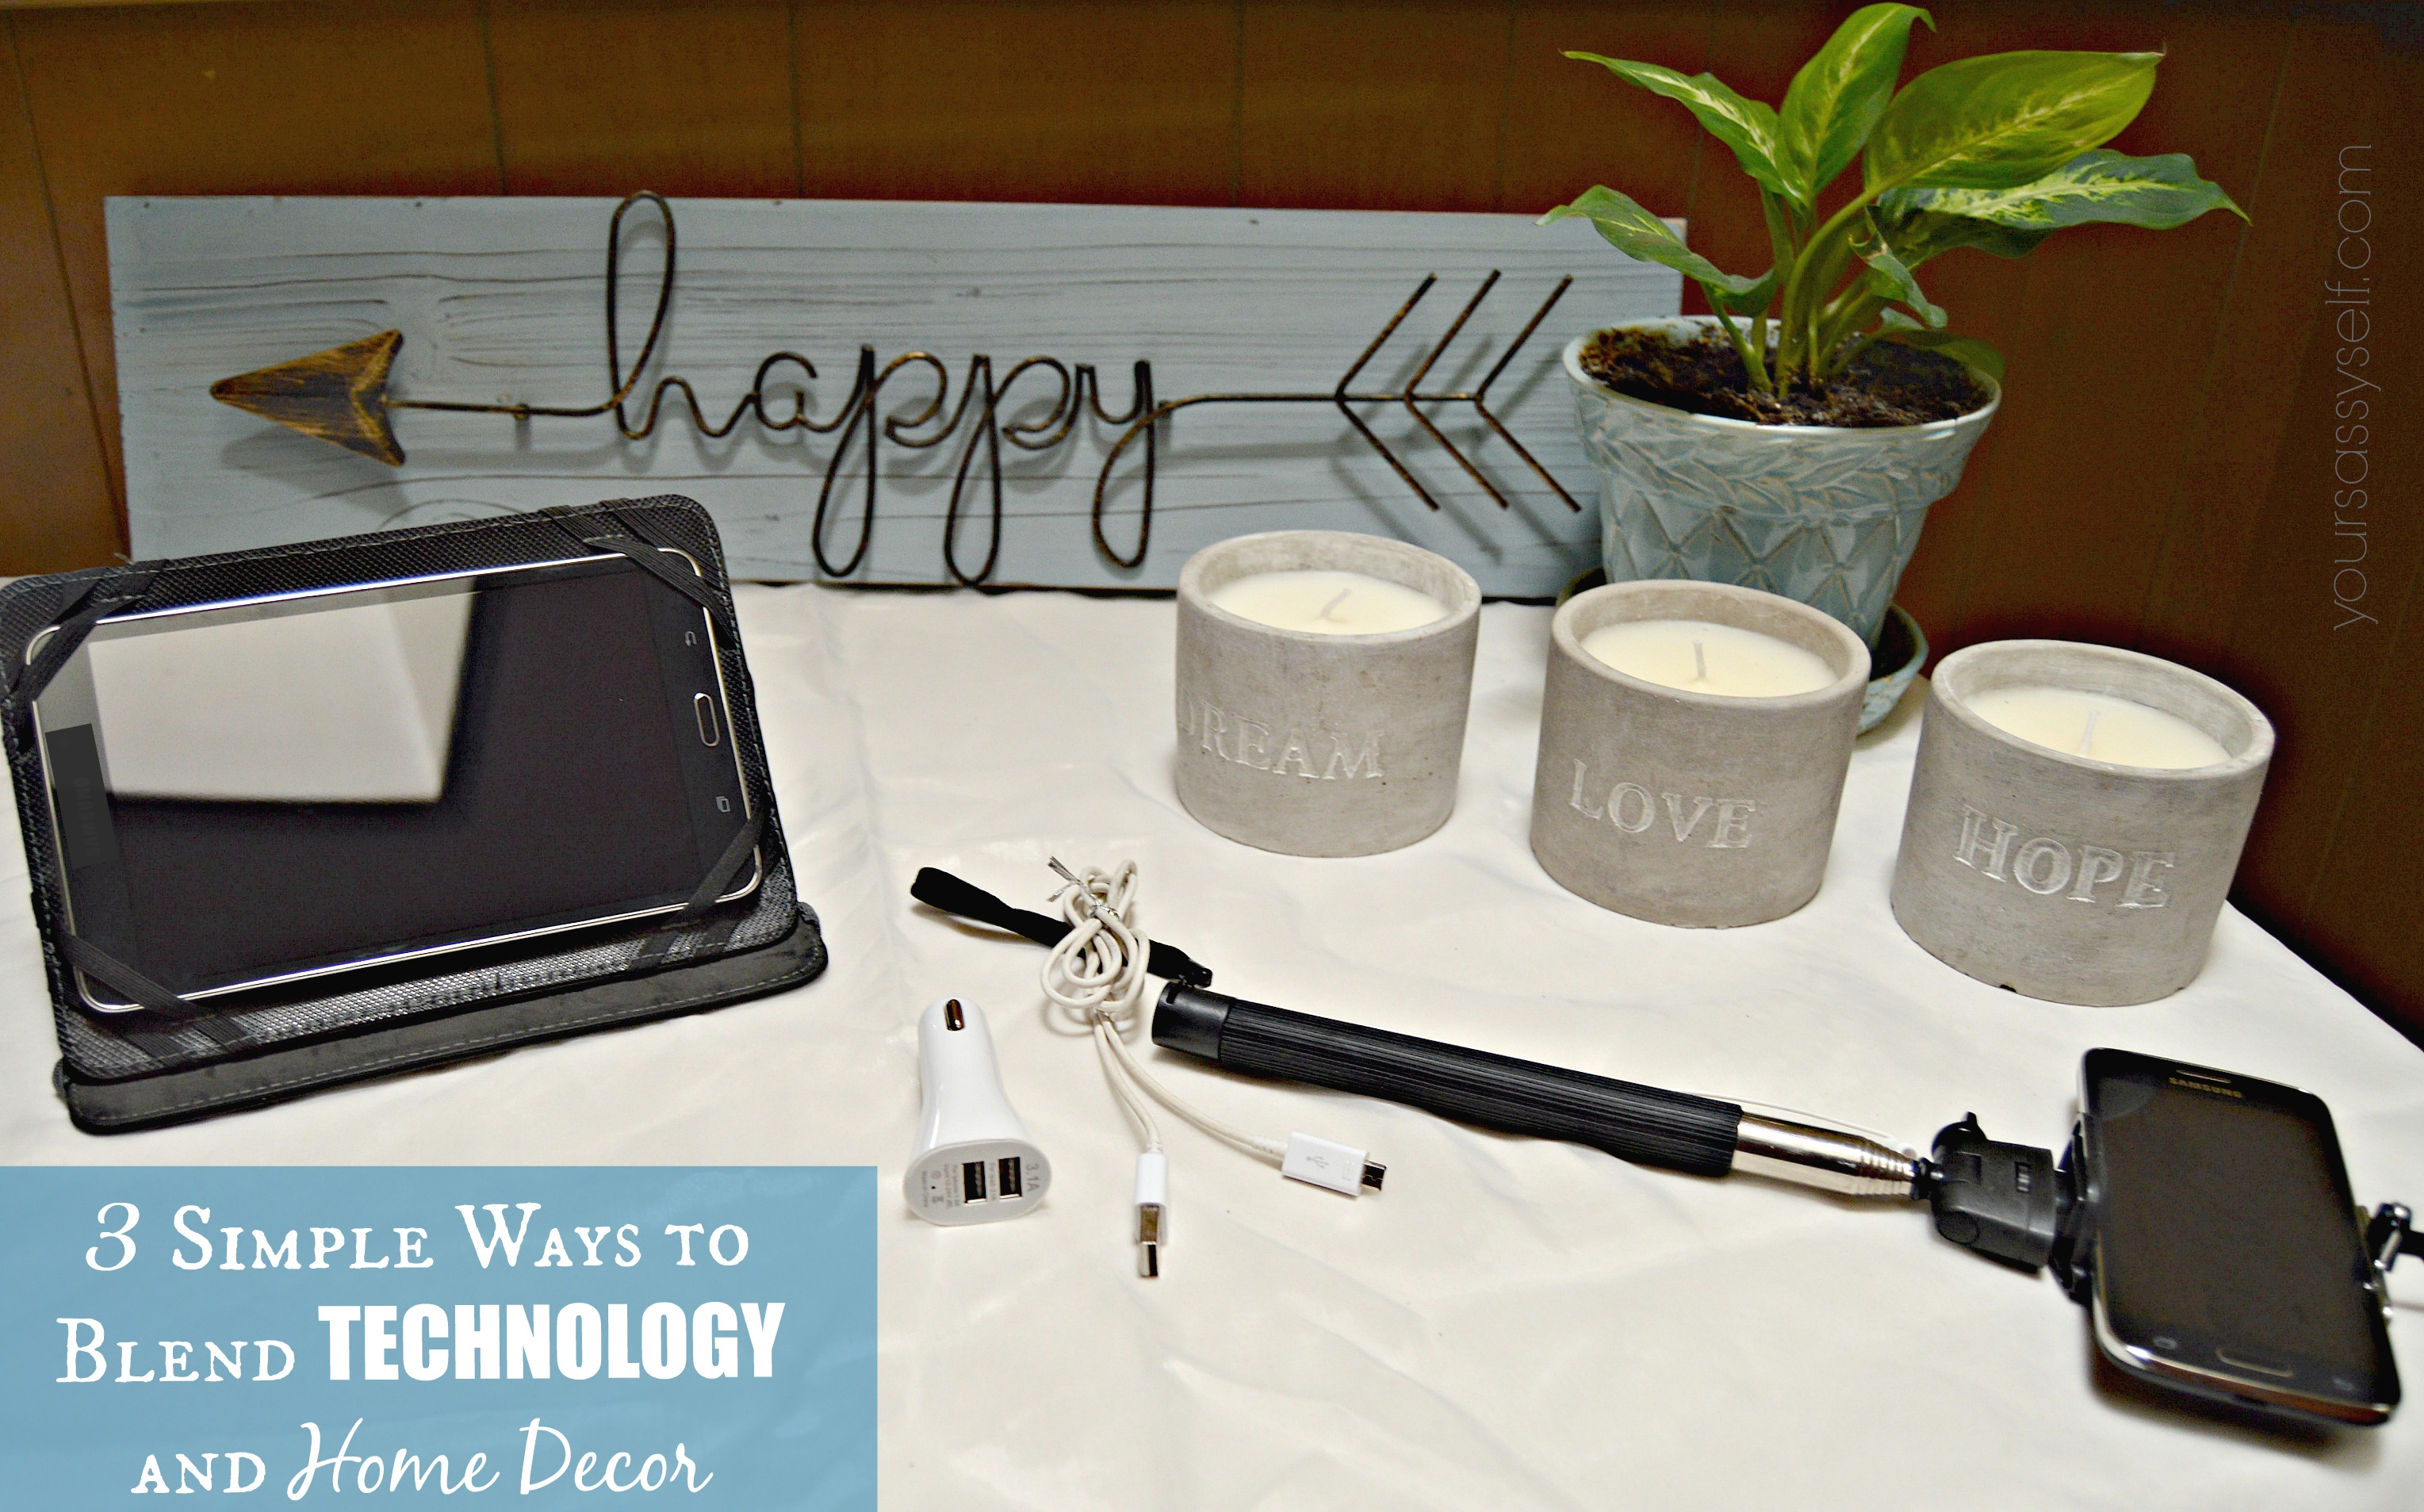 3 Simple Ways to Blend Technology and Home Decor